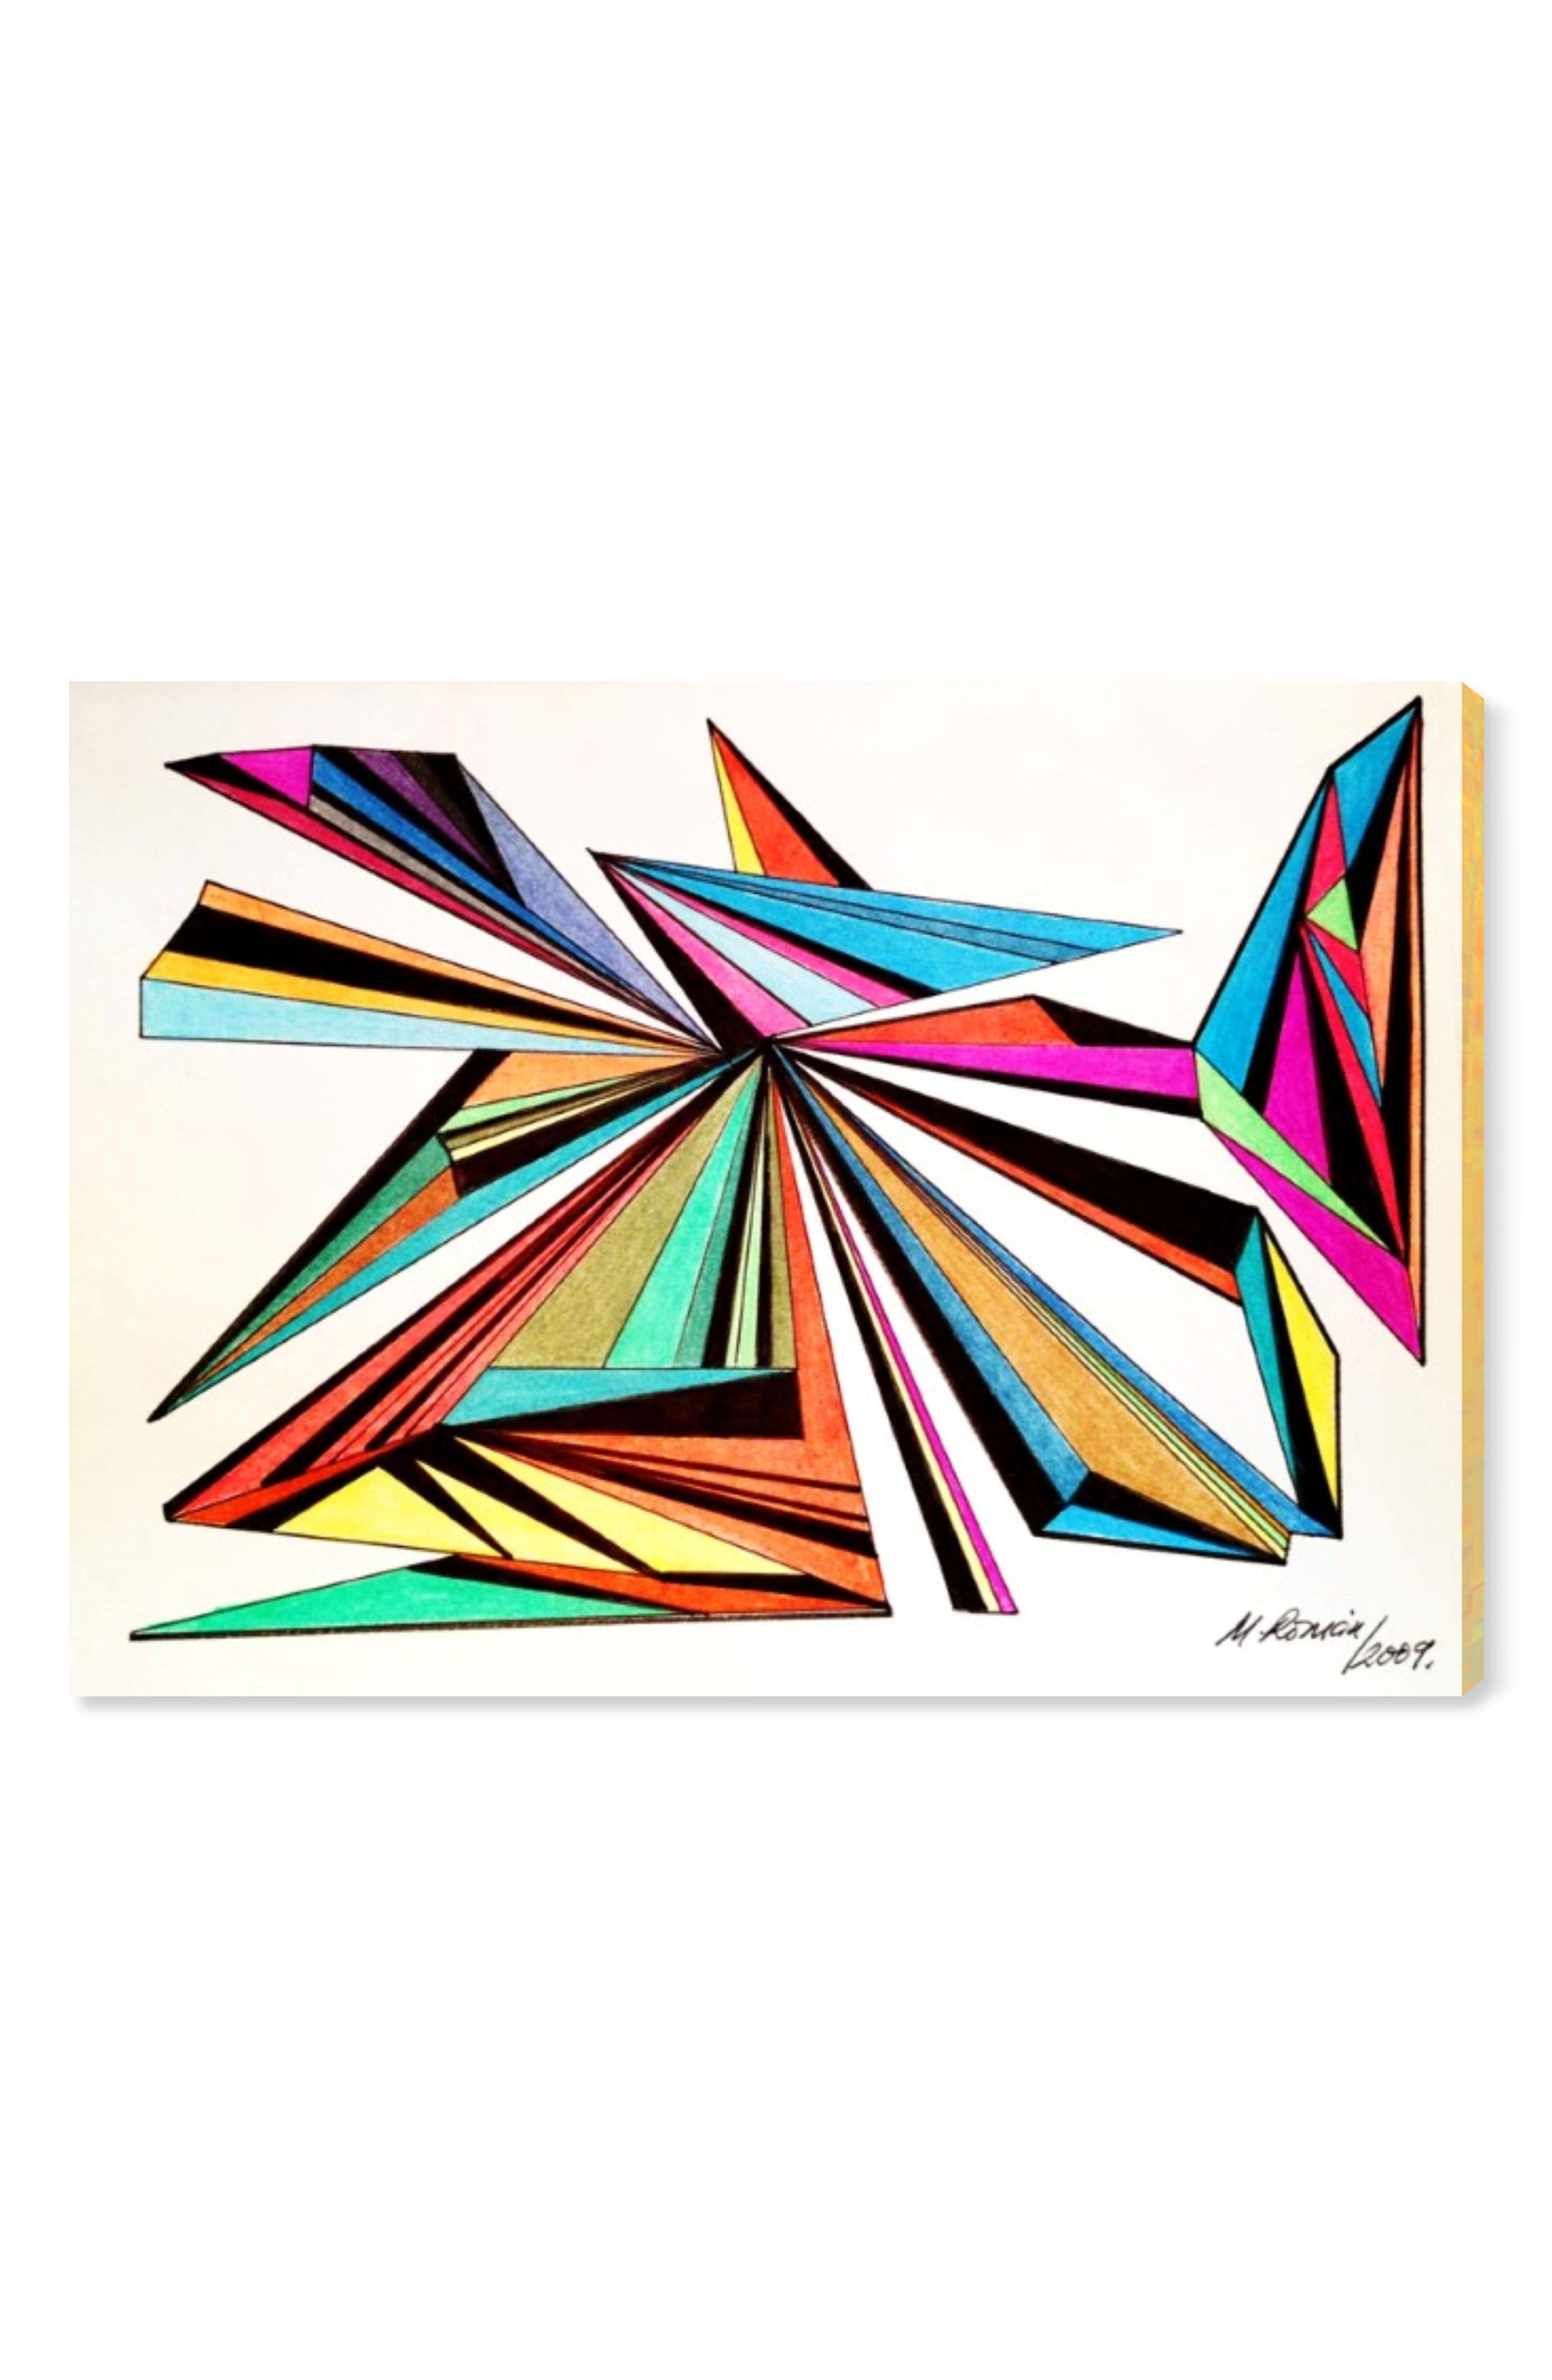 The sharp angles and vibrant hues of this artful giclee print is the perfect way to bring the modern abstract movement into your home. This ready-to-hang print is presented on a hand-stretched canvas and mounted on a sustainably harvested, FSC-certified wood frame. Style Name: Oliver Gal Architecta Canvas Wall Art. Style Number: 5520327. Available in stores.